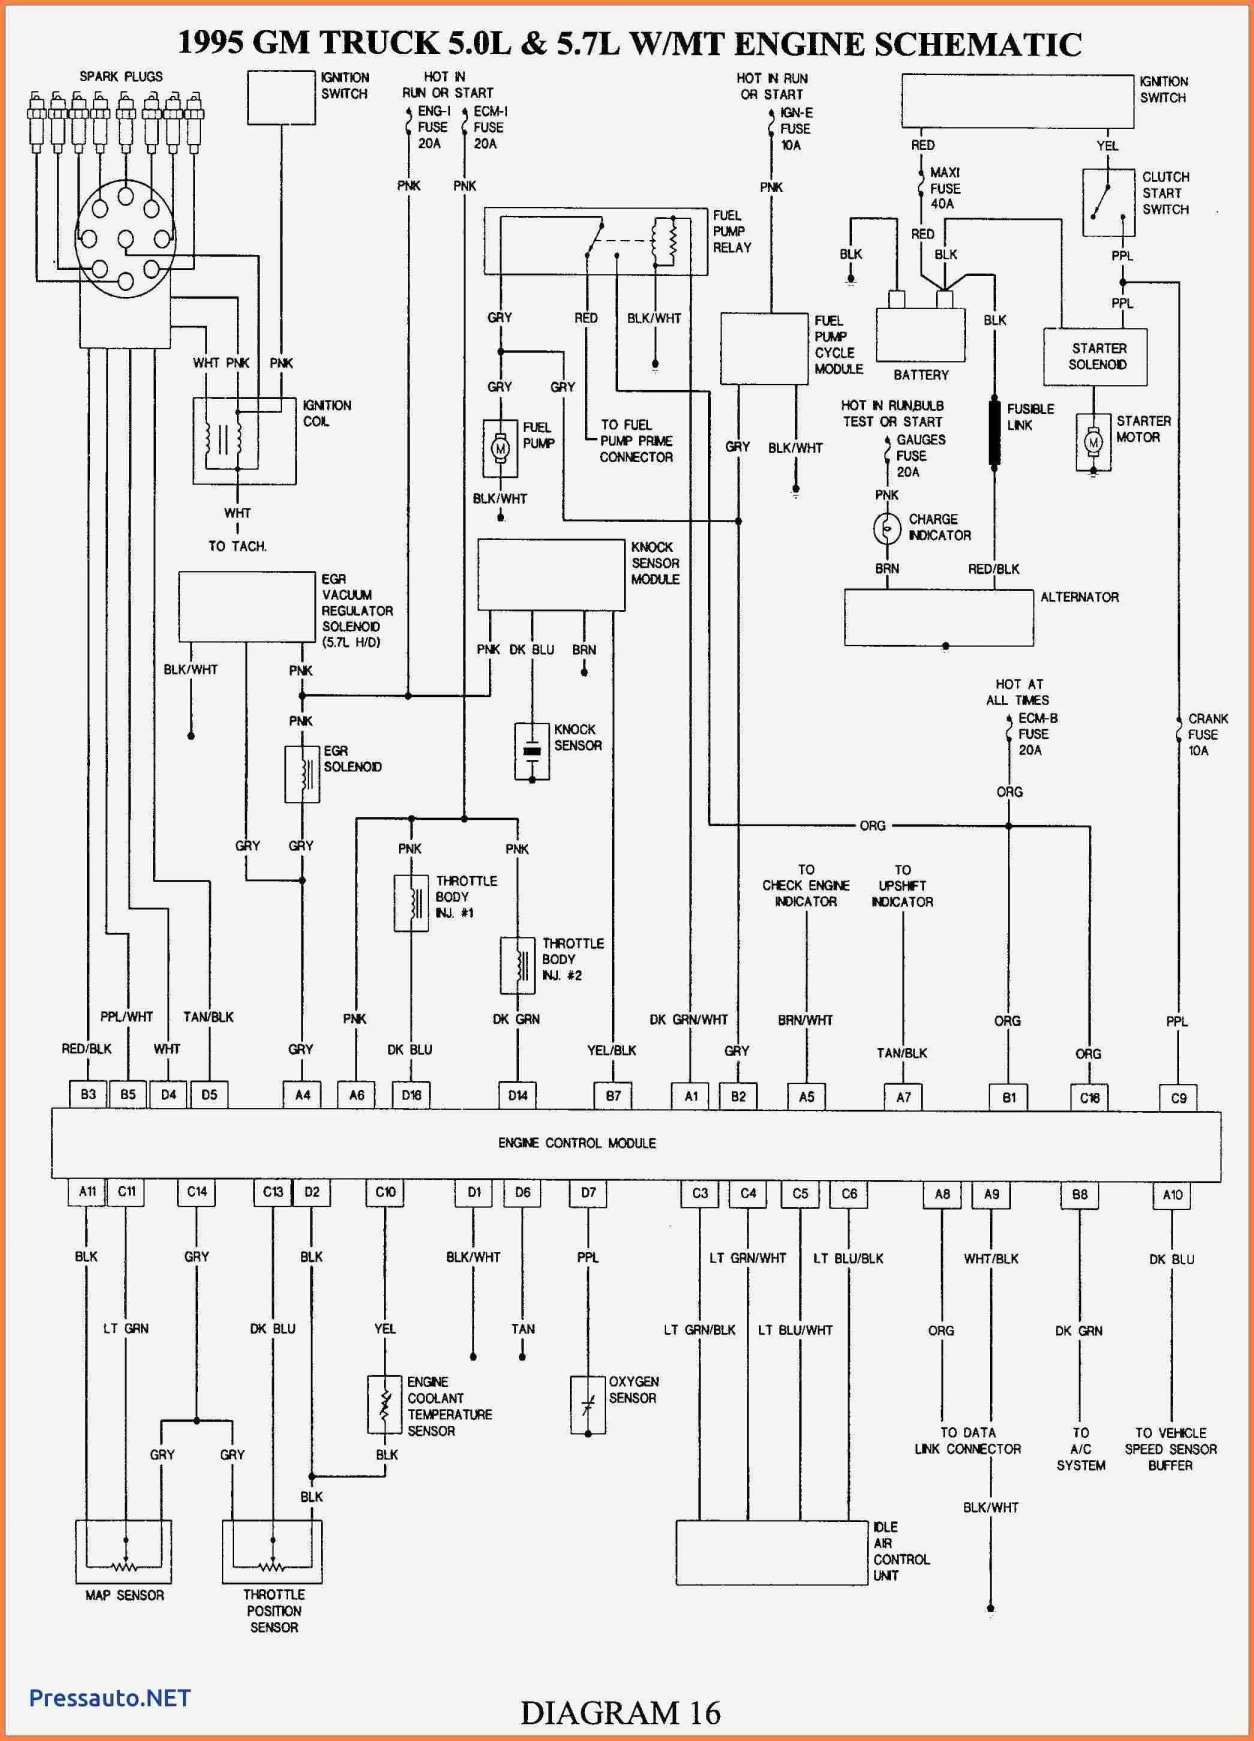 17 2002 Chevy Truck Wiring Diagram Truck Diagram Wiringg Net In 2020 Chevy Trucks Chevy 1500 Electrical Diagram